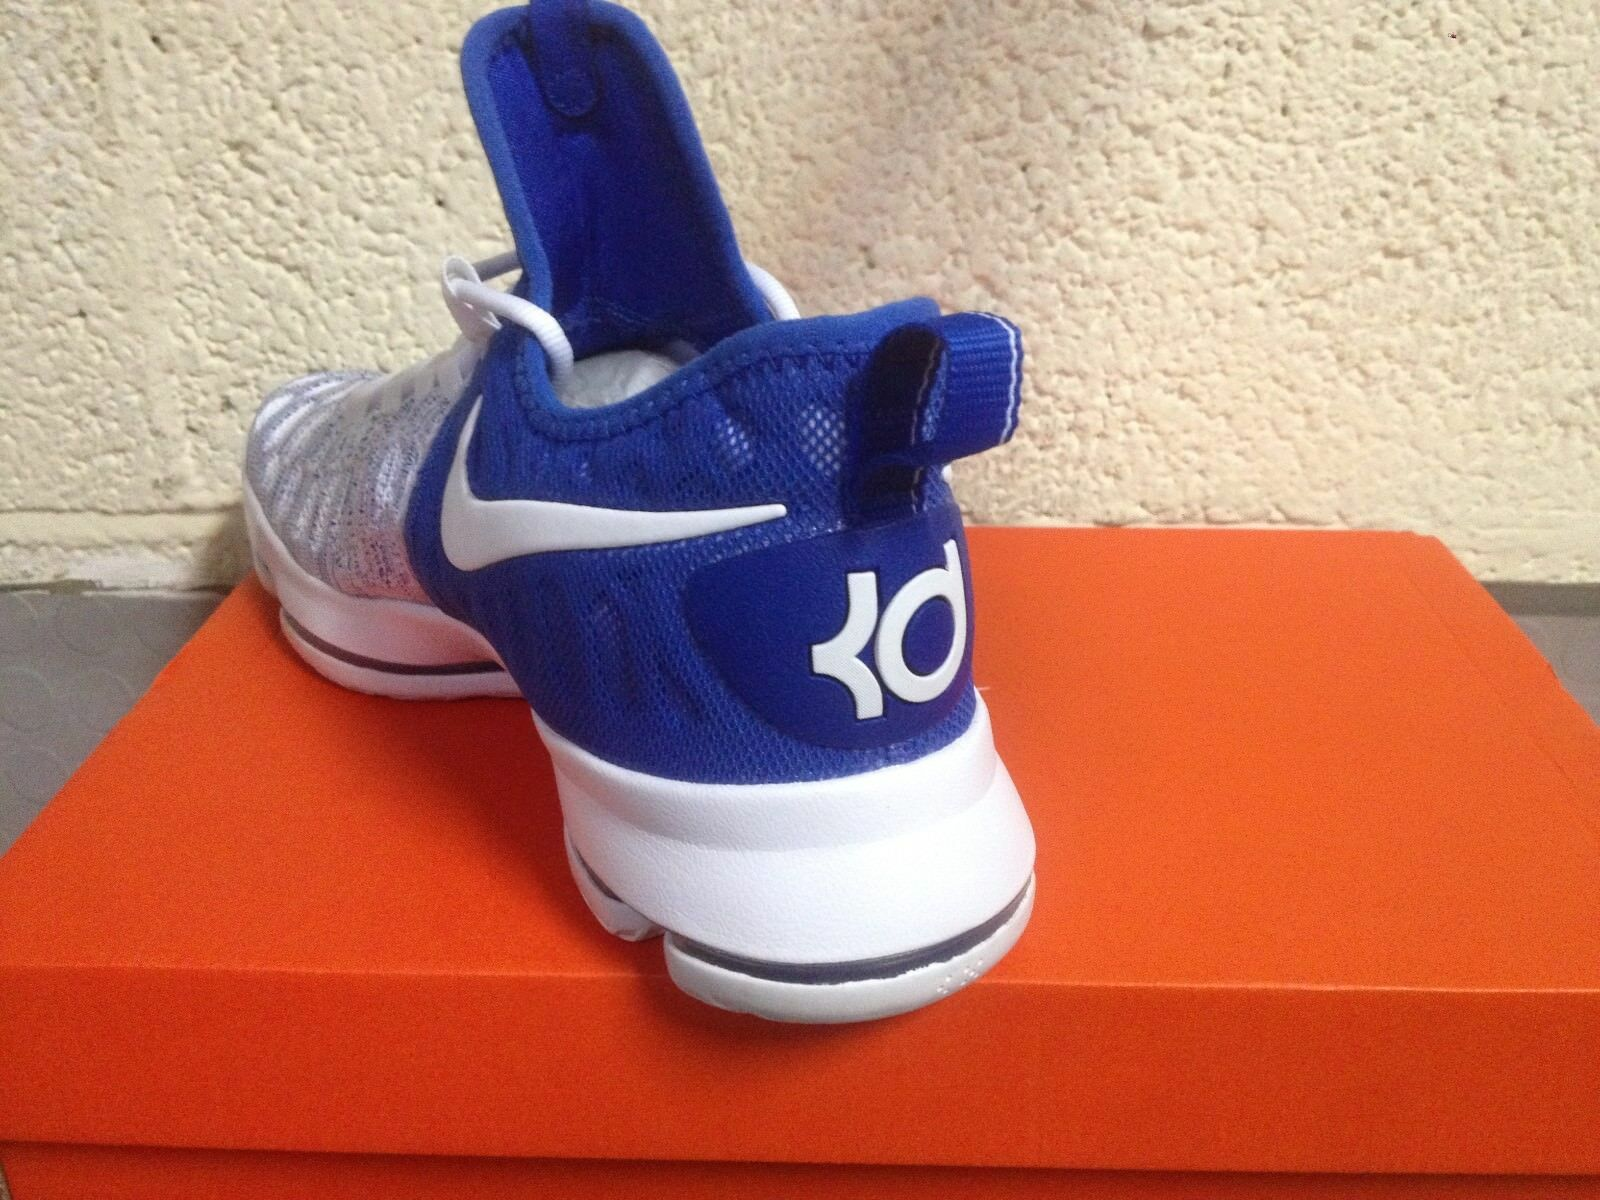 new products c55c7 2151a ... france scarpe shoes basket nike zoom kd 9 bianco kevin durant bianco 9  blu n.